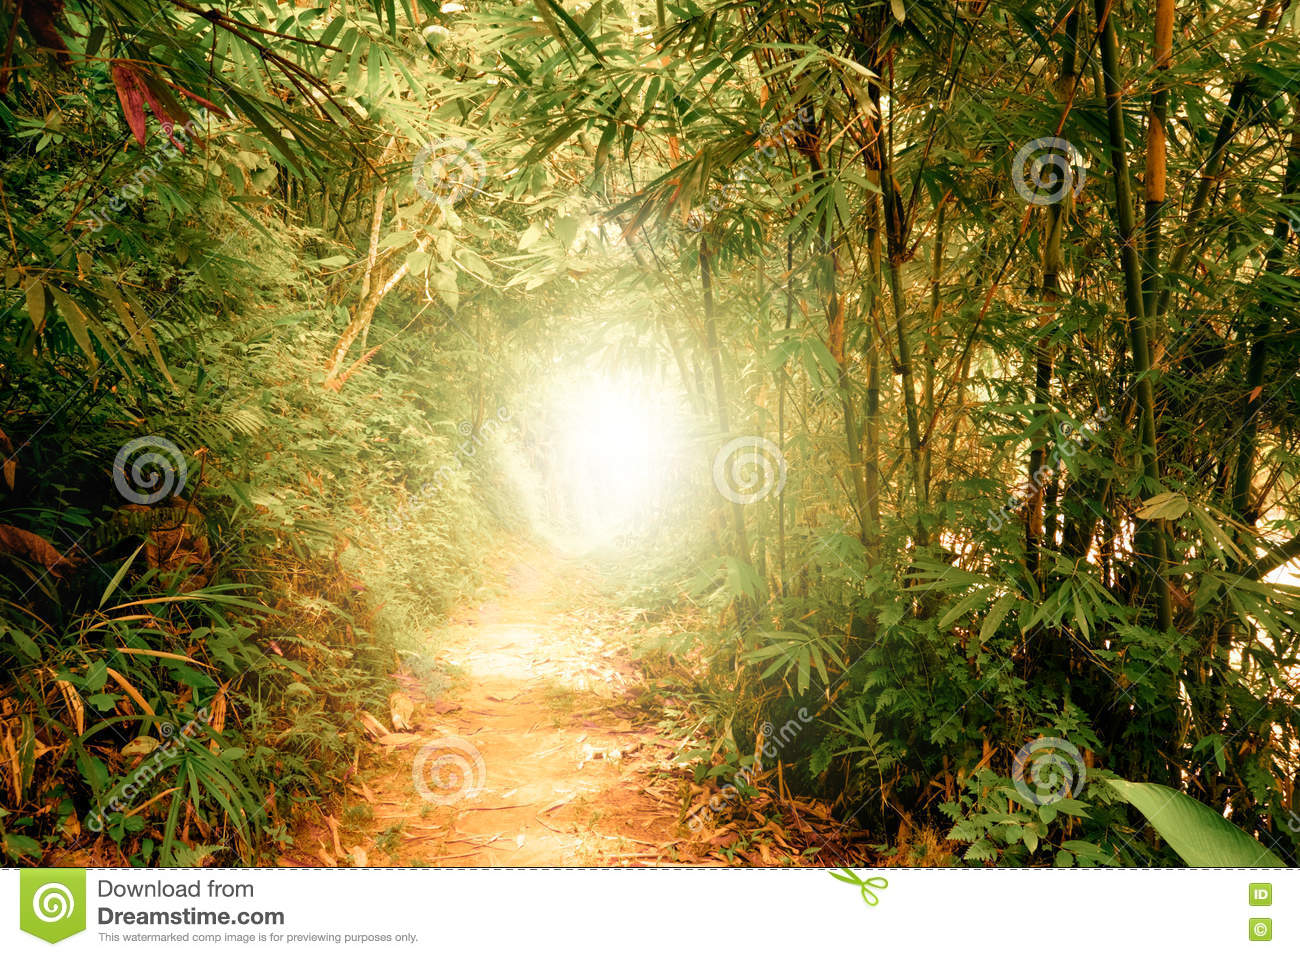 Tunnel with sun rays in fantasy tropical forest